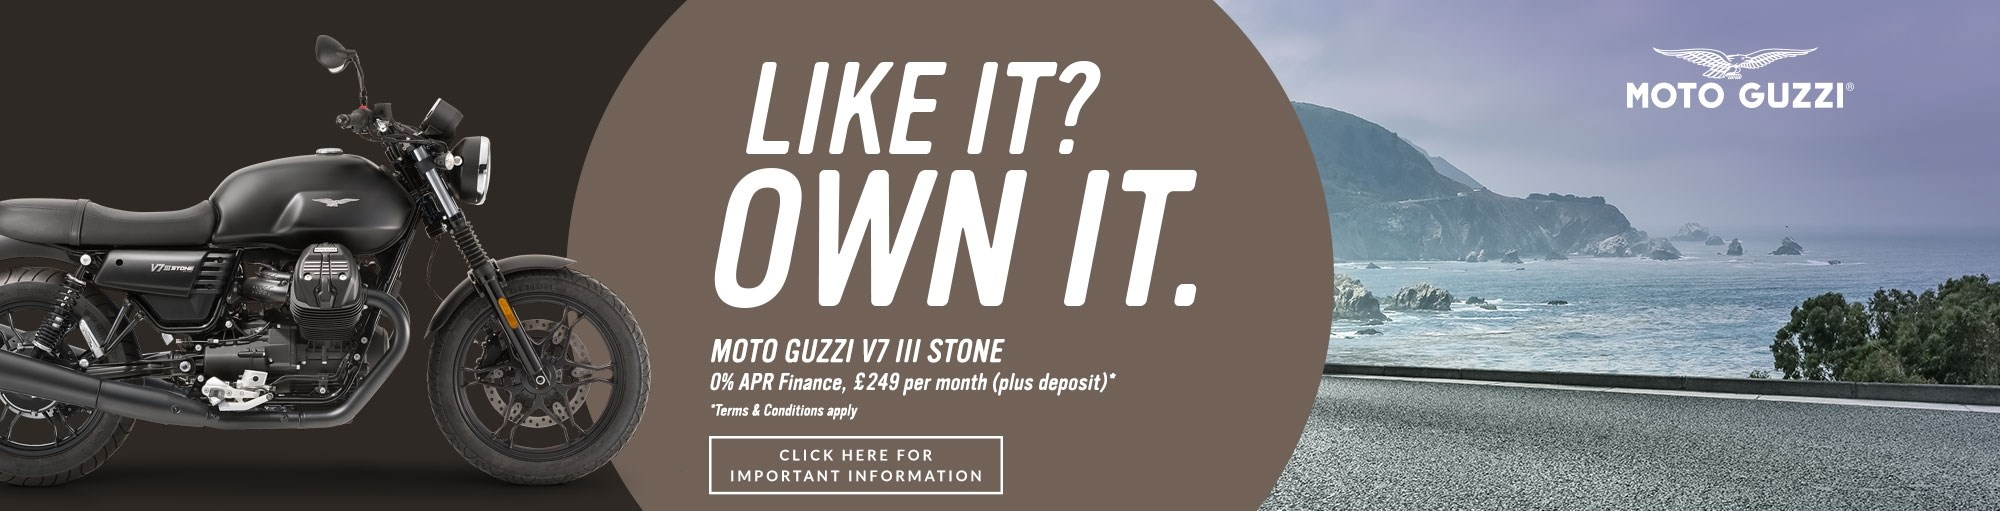 Moto Guzzi V7 III Stone Finance